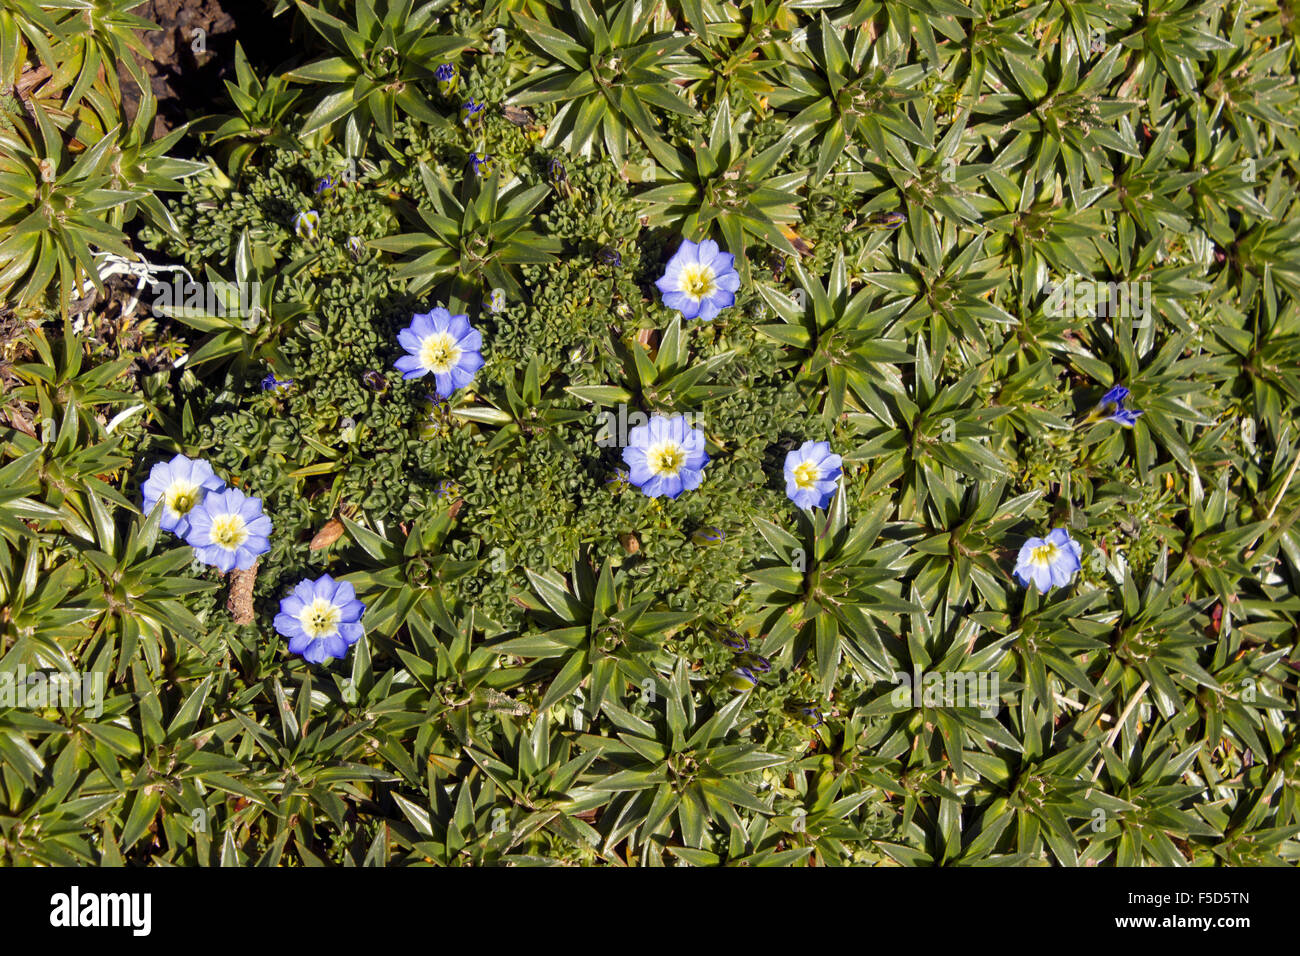 Gentians (Gentiana sedifolia) growing on the high paramo at 4,500m elevation in the Ecuadorian Andes - Stock Image